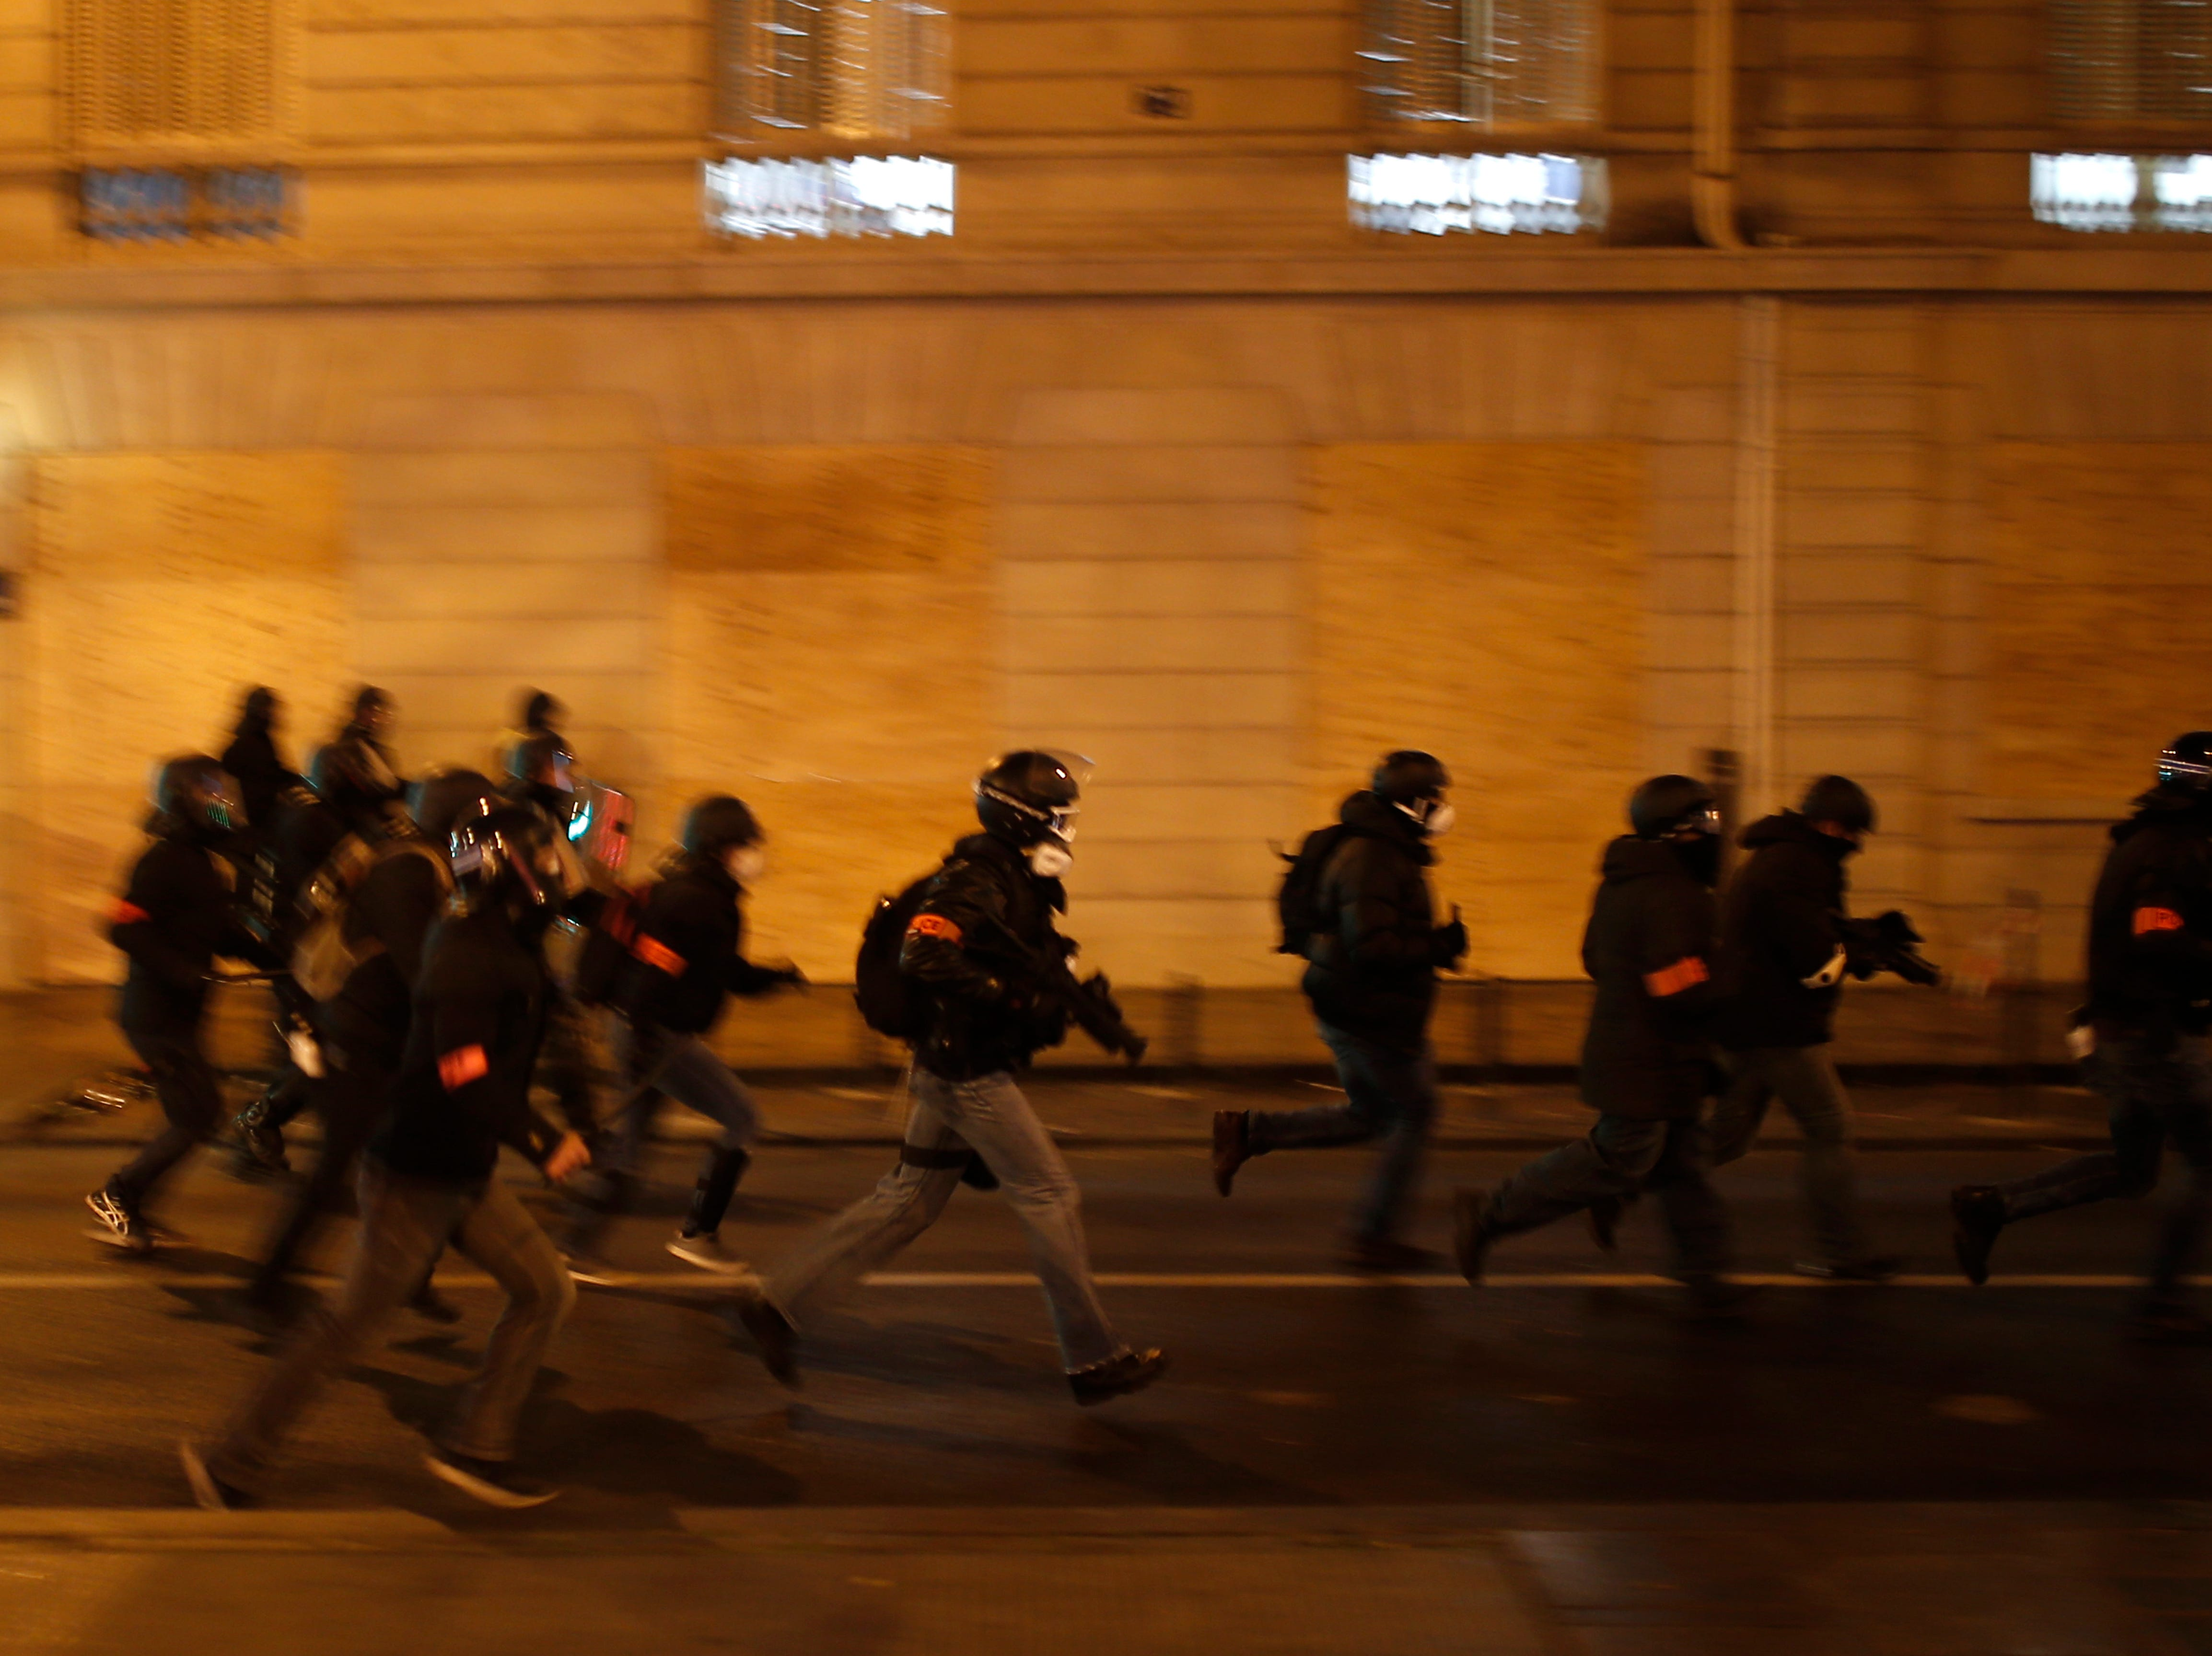 French riot police officers charge during clashes Saturday, Dec. 8, 2018, in Paris. Crowds of yellow-vested protesters angry at President Emmanuel Macron and France's high taxes tried to converge on the presidential palace Saturday, some scuffling with police firing tear gas, amid exceptional security measures aimed at preventing a repeat of last week's rioting.